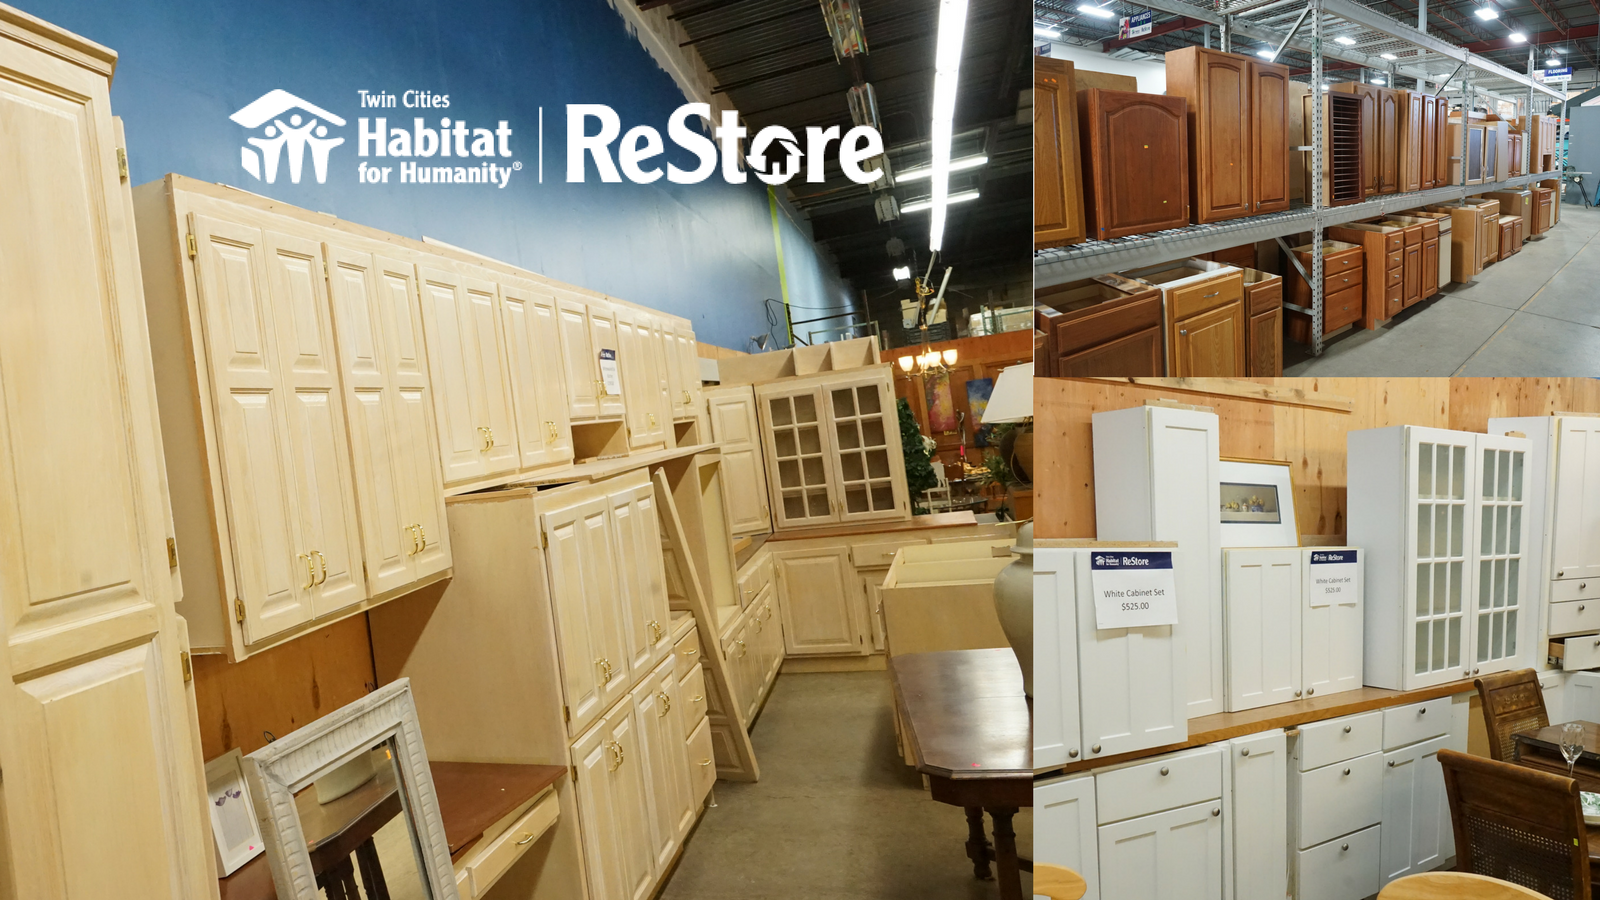 Kicthen Cabinets and Bathroom Cabinets available at the Twim Cities Habitat for Humanity ReStore